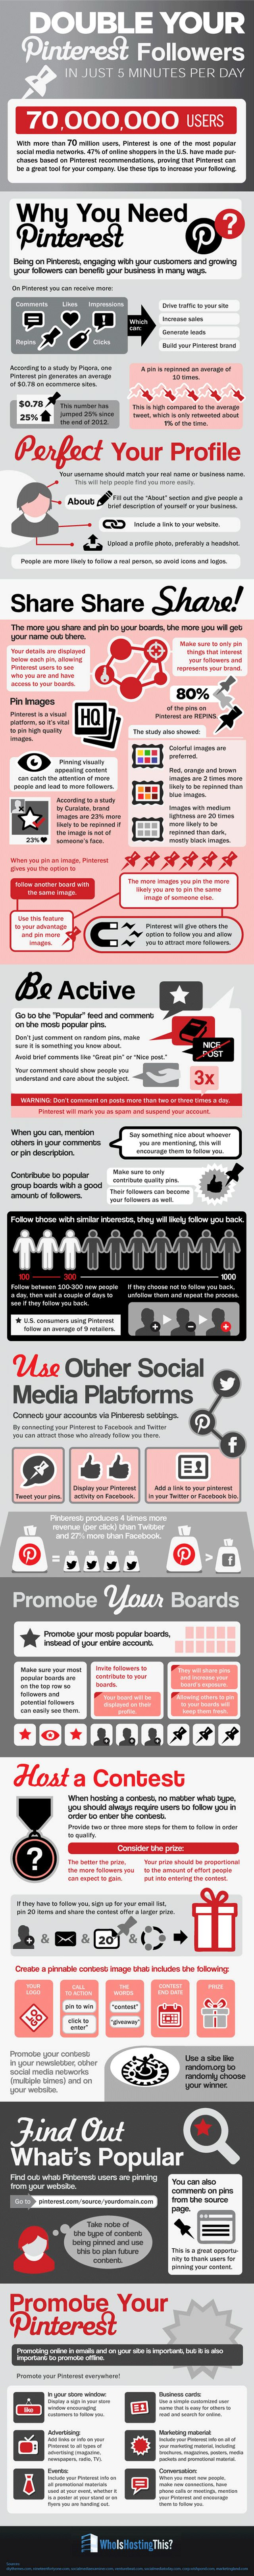 How to Double Your Pinterest Followers in Just 5 Minutes a Day Infographic